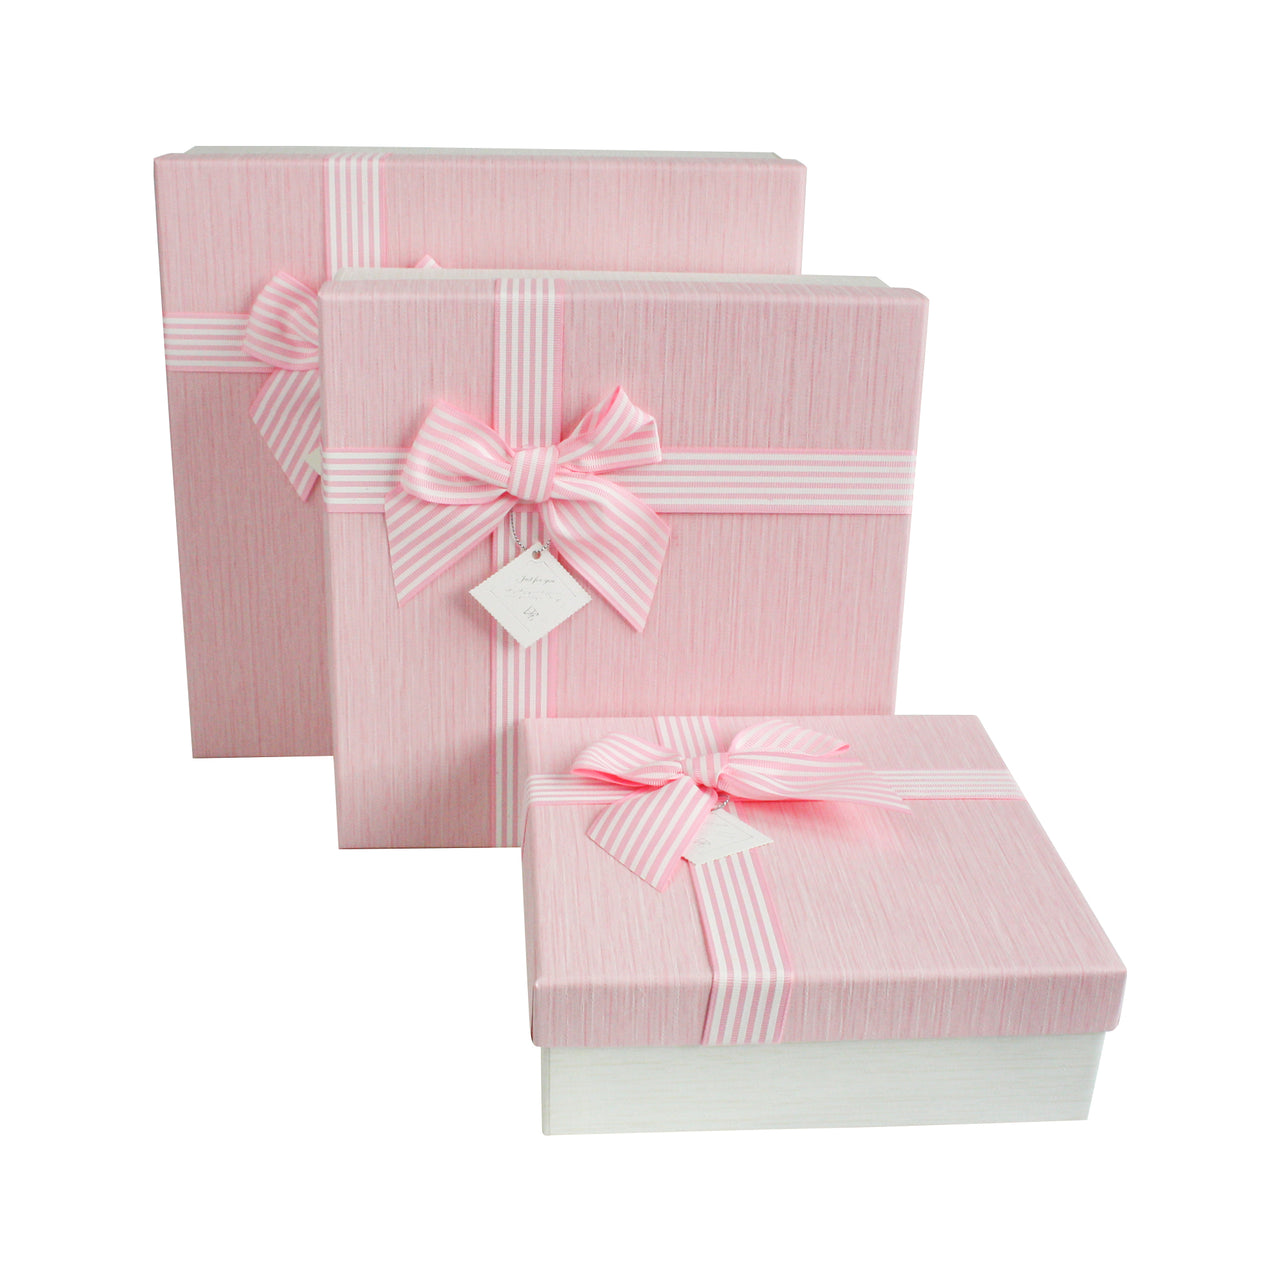 Square Cream / Baby Pink Gift Box -Set of 3